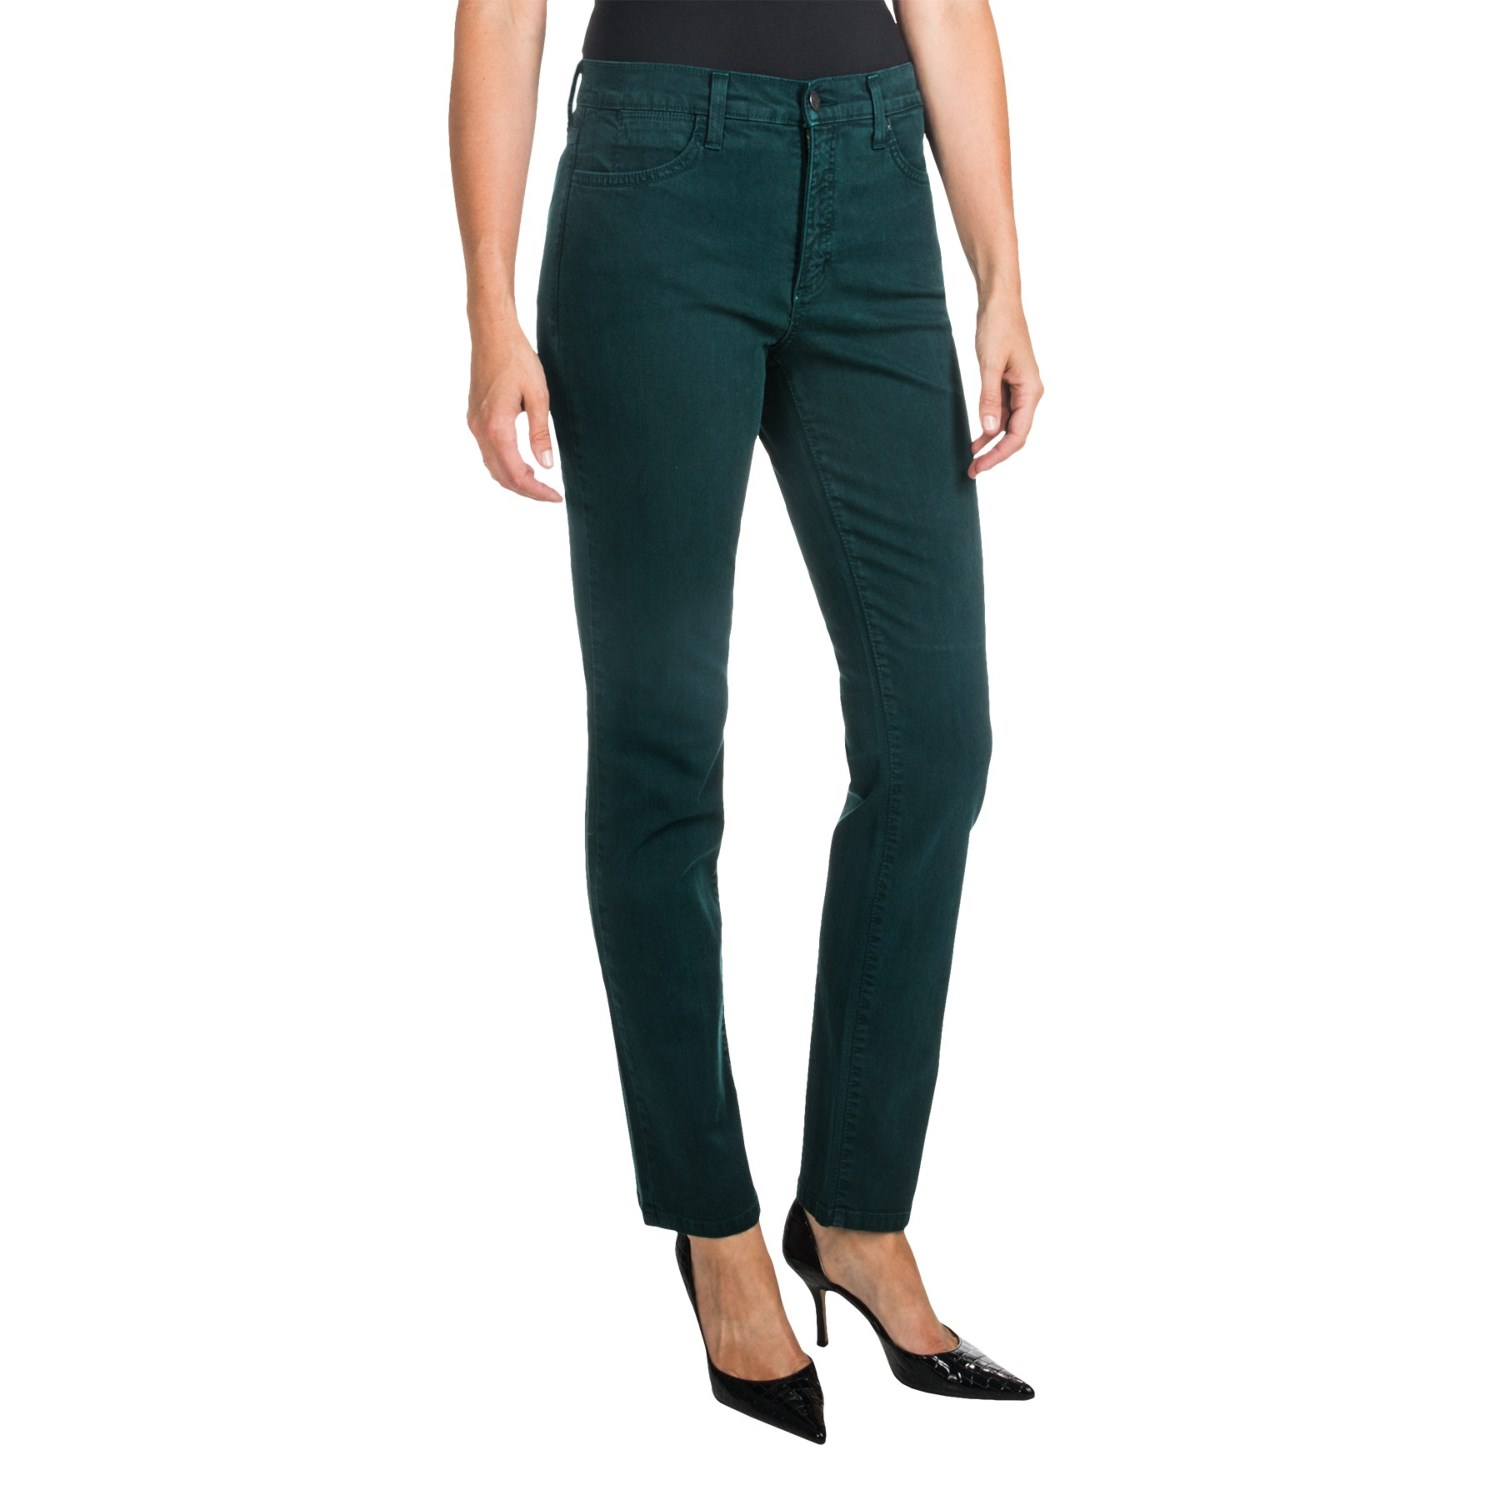 Nydj Georgia Skinny Jeans For Women 3J